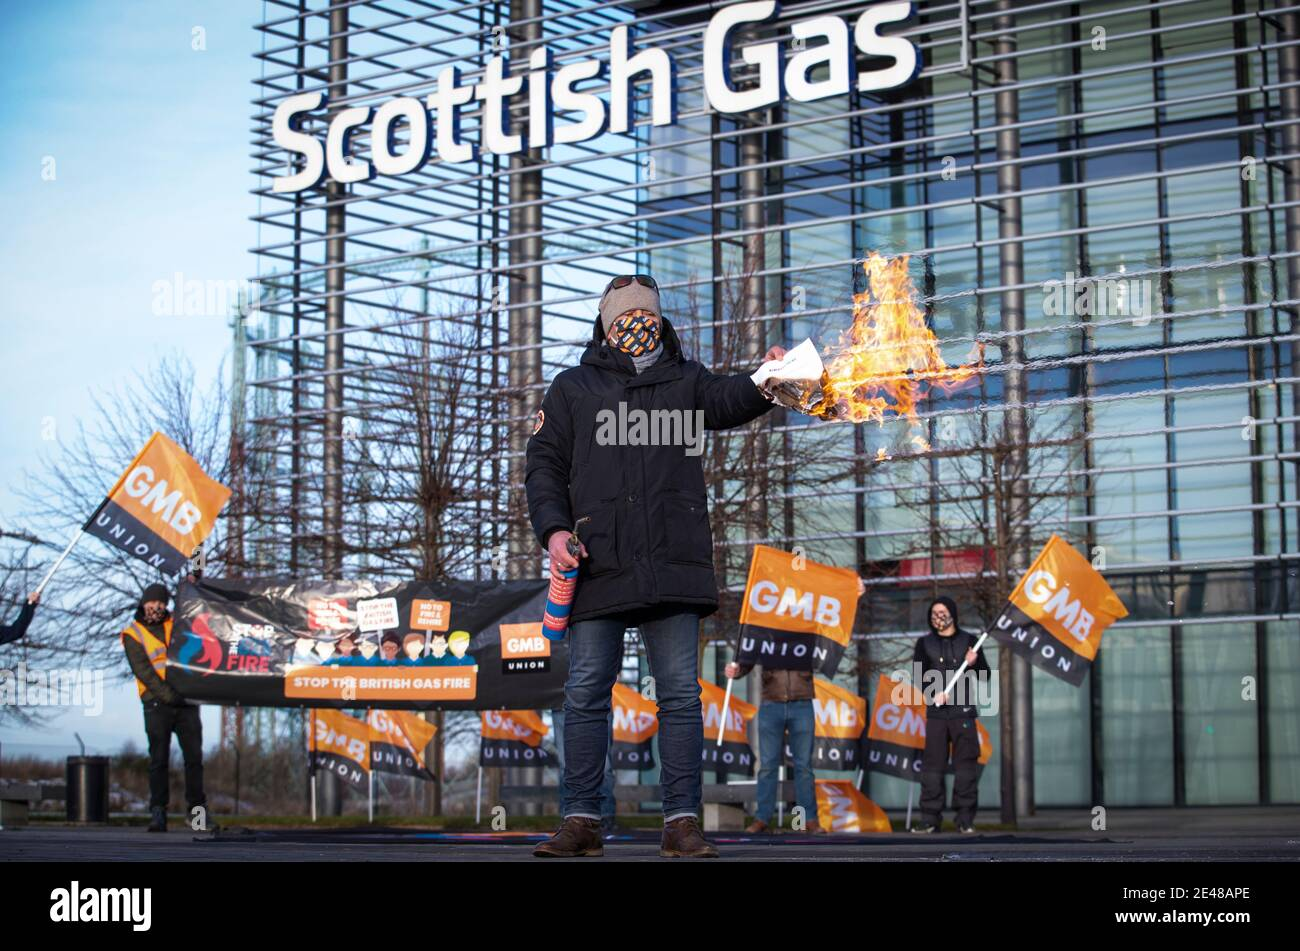 One of the British Gas workers outside the Scottish Gas call centre in Edinburgh sets fire to the new contract on the sixth day of a seven day strike over new contracts. Picture date: Friday January 22, 2021. Stock Photo